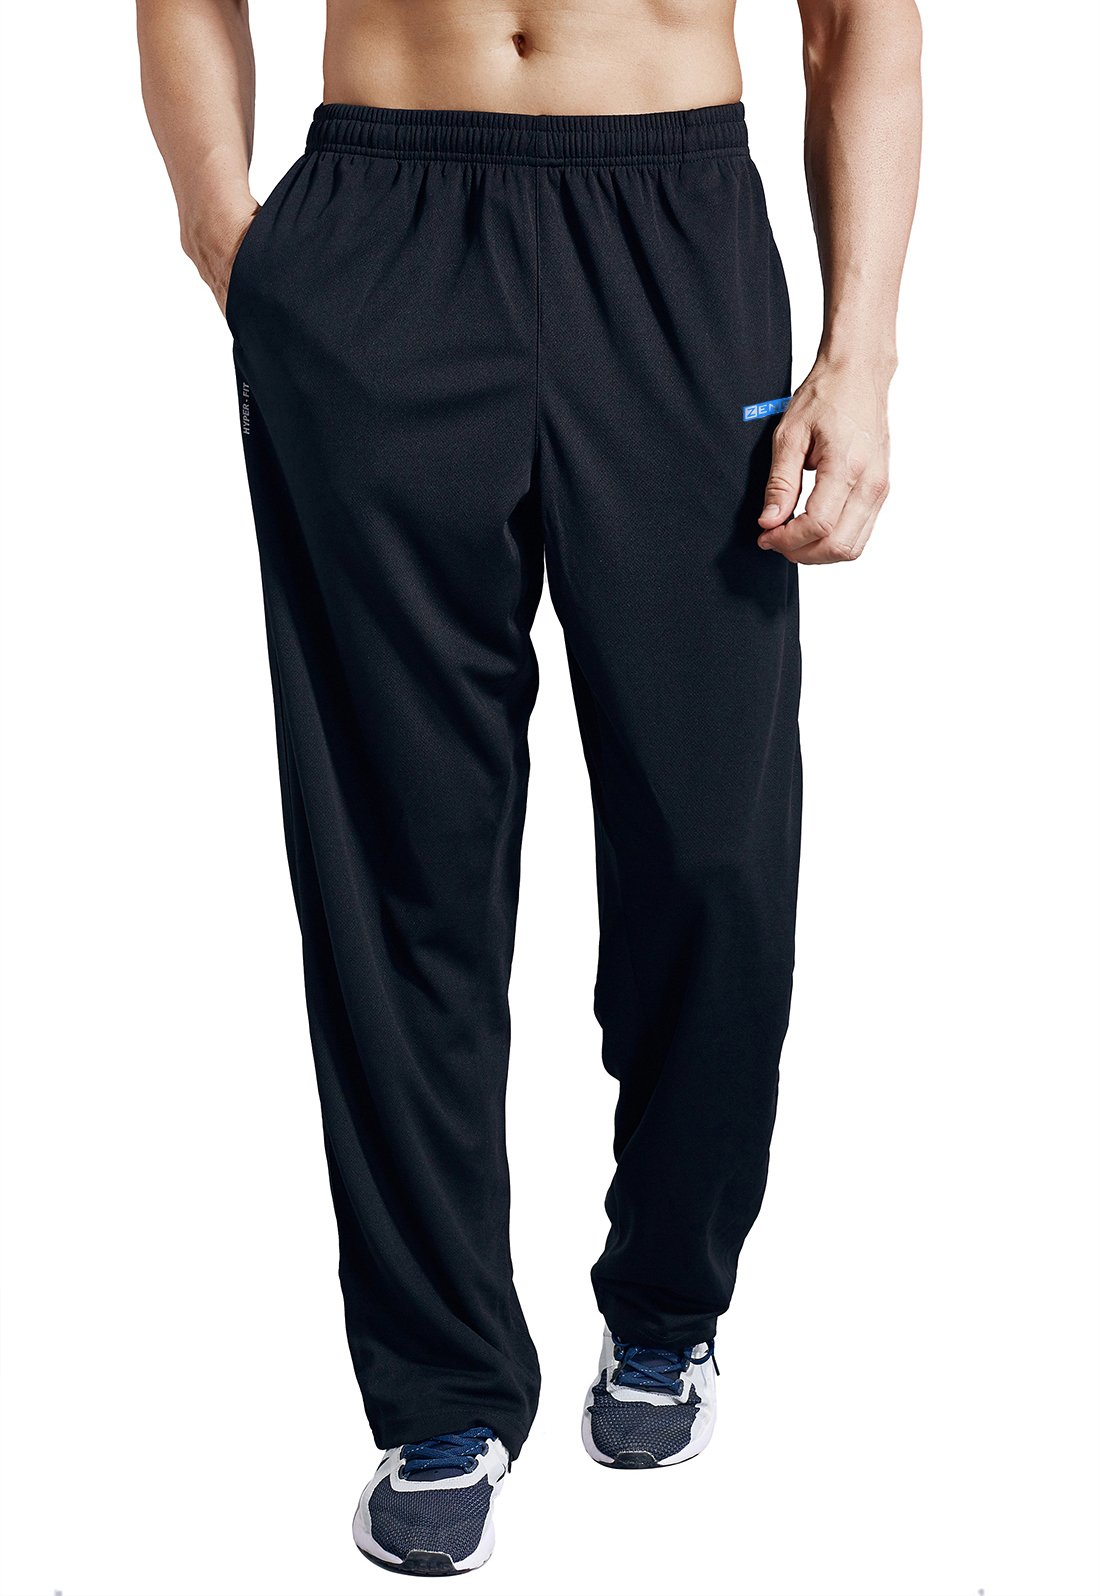 ZENGVEE Men's Sweatpant with Pockets Open Bottom Athletic Pants for Jogging, Workout, Gym, Running, Training(0317-Solid Black,S)